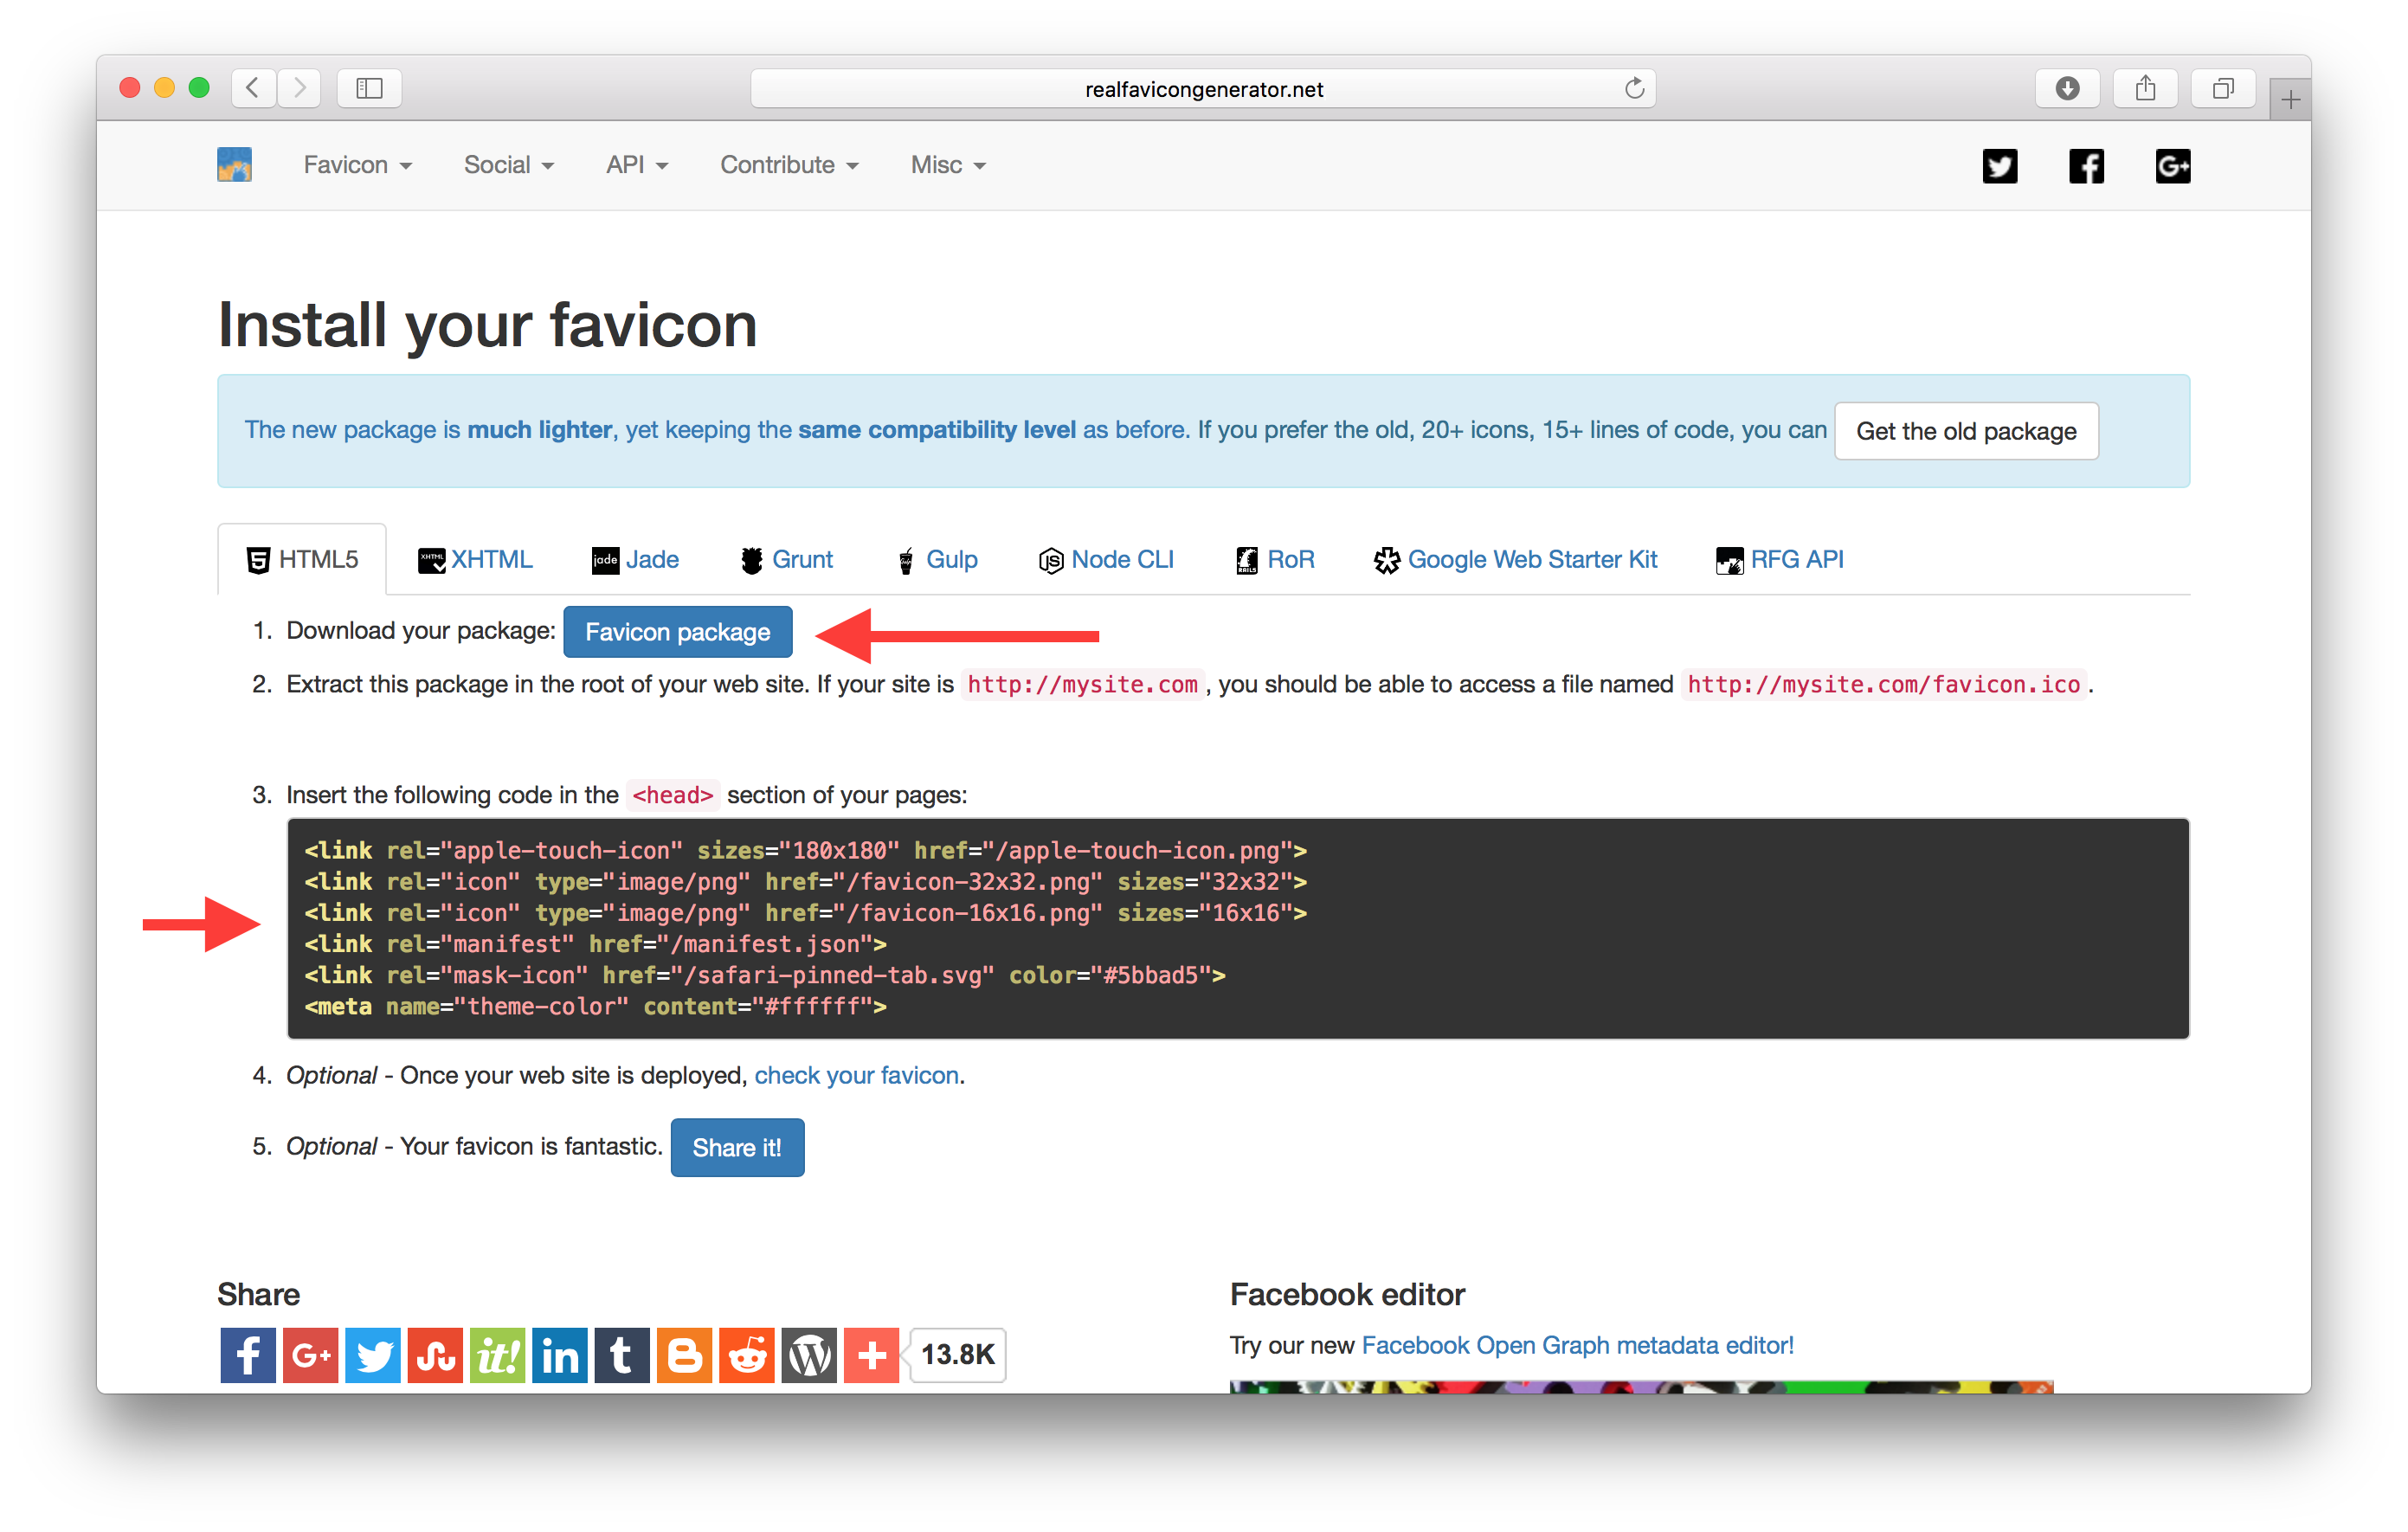 Realfavicongenerator.net completed screenshot